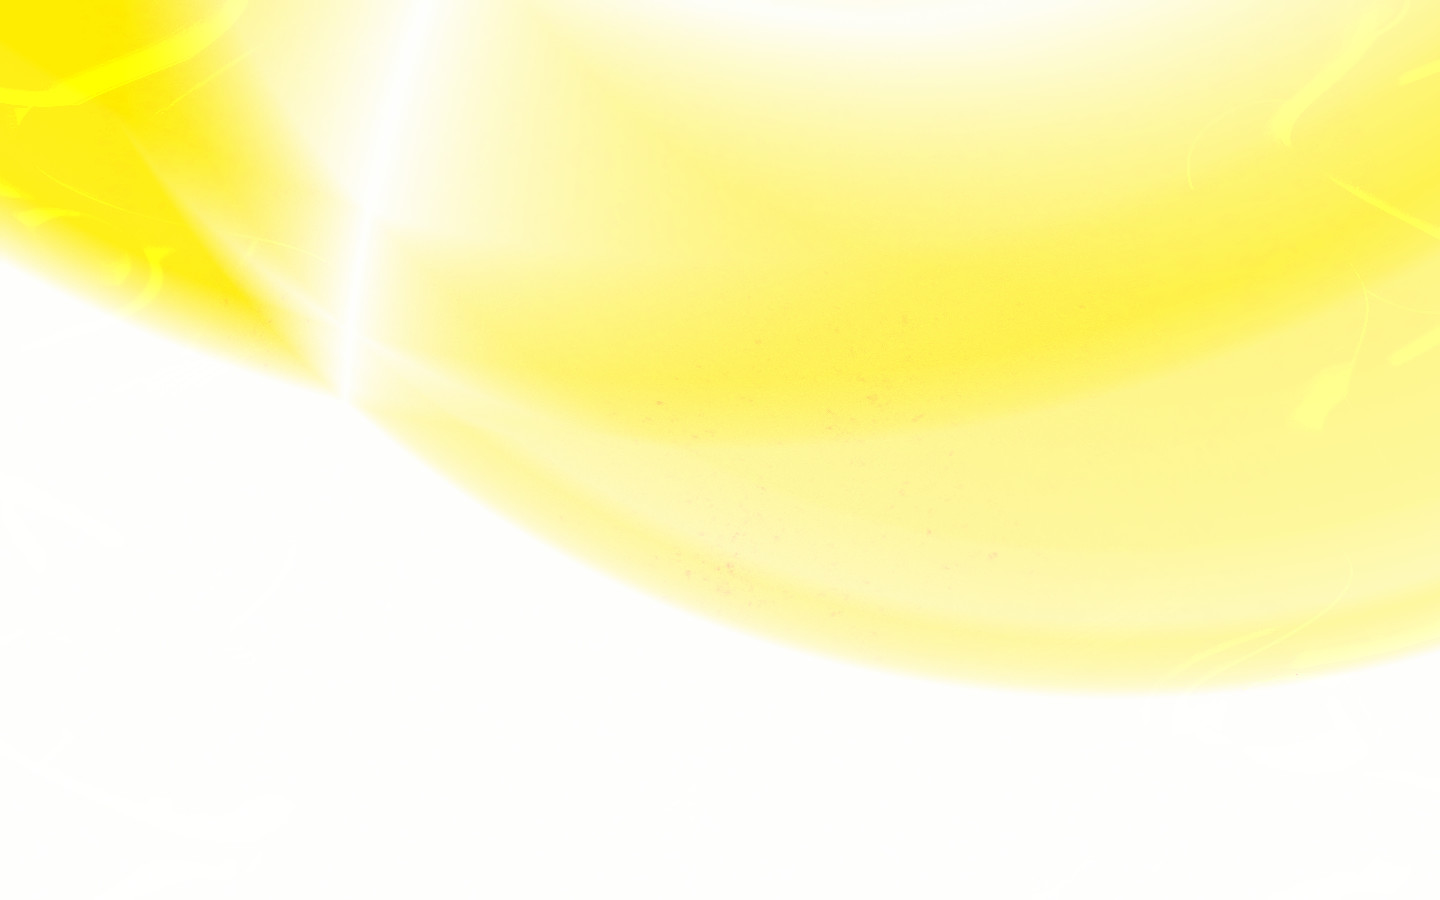 Yellow Abstract Background Free